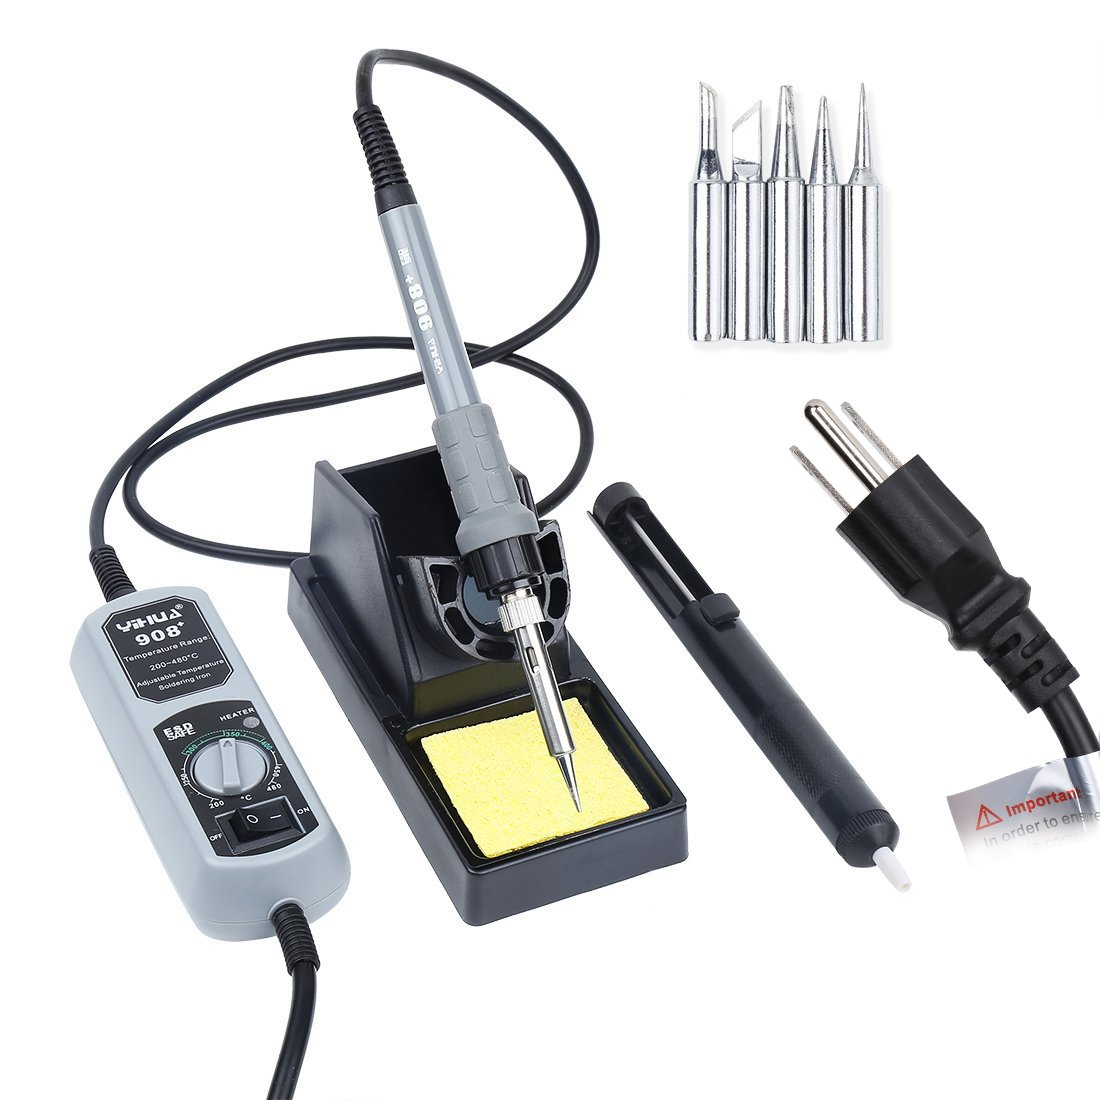 Soldering Iron Kit Electronics 60W Soldering Iron Tool, 60W 110V Welding Solder Iron with ON-OFF Switch Module, 104 Inch Power Cord, Soldering Stand Holder,5 Iron Tips Kit(Clearance Deal!))